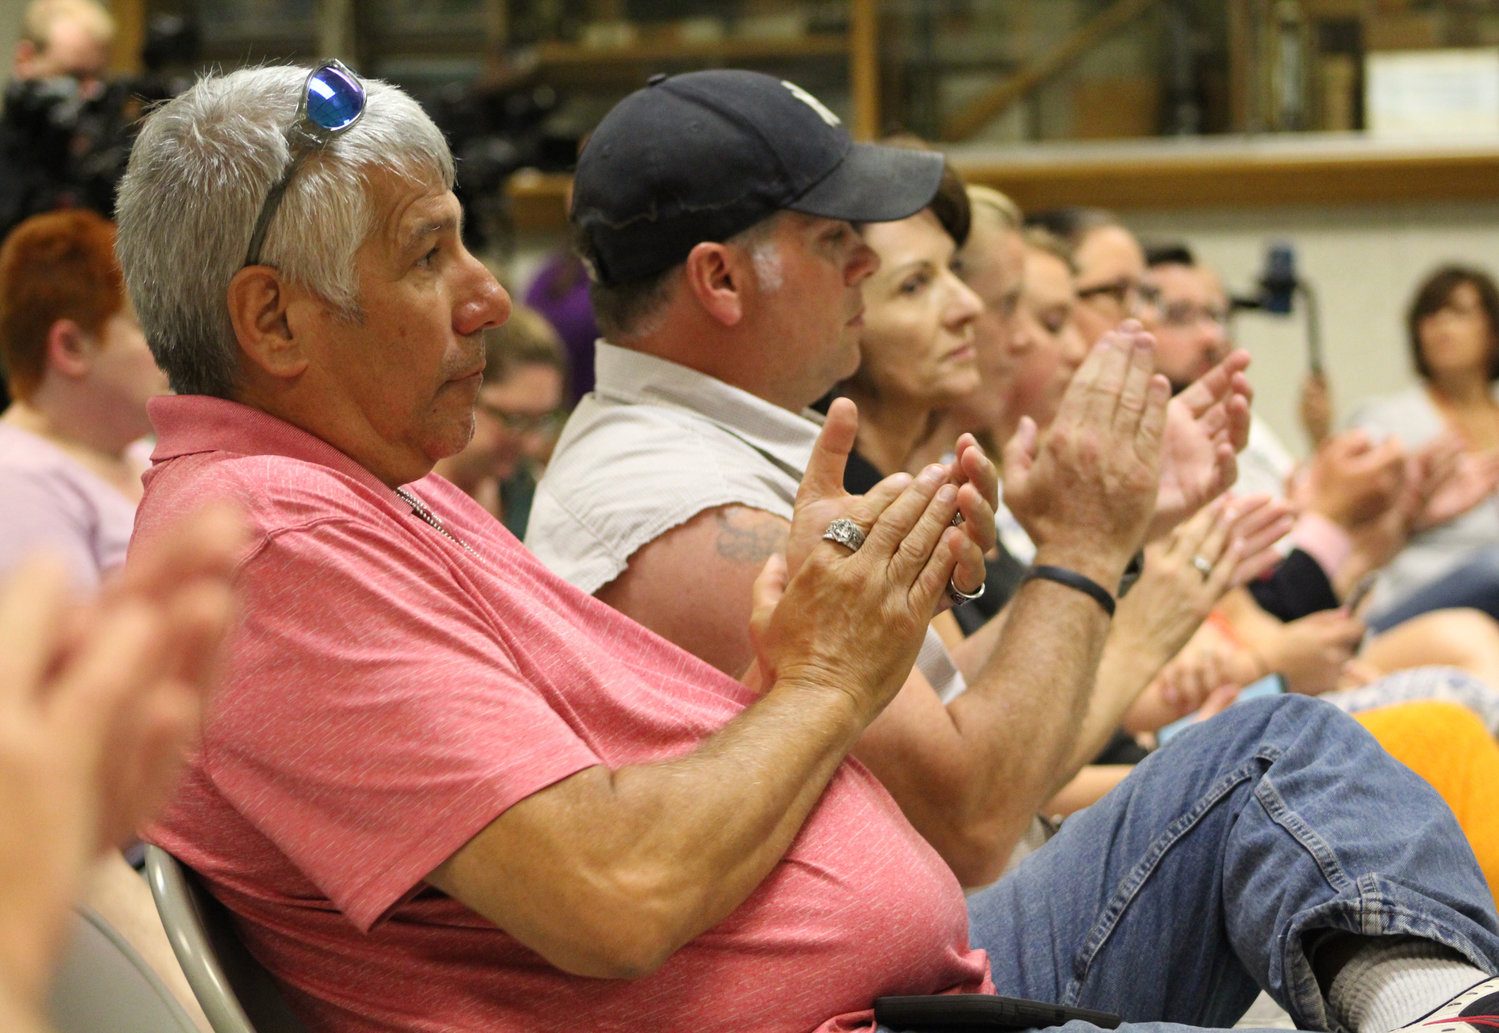 Robert Hirsch, of Carlisle, applauds during Congressman Scott Perry's town hall at the Hummelstown Fire Department on July 30.